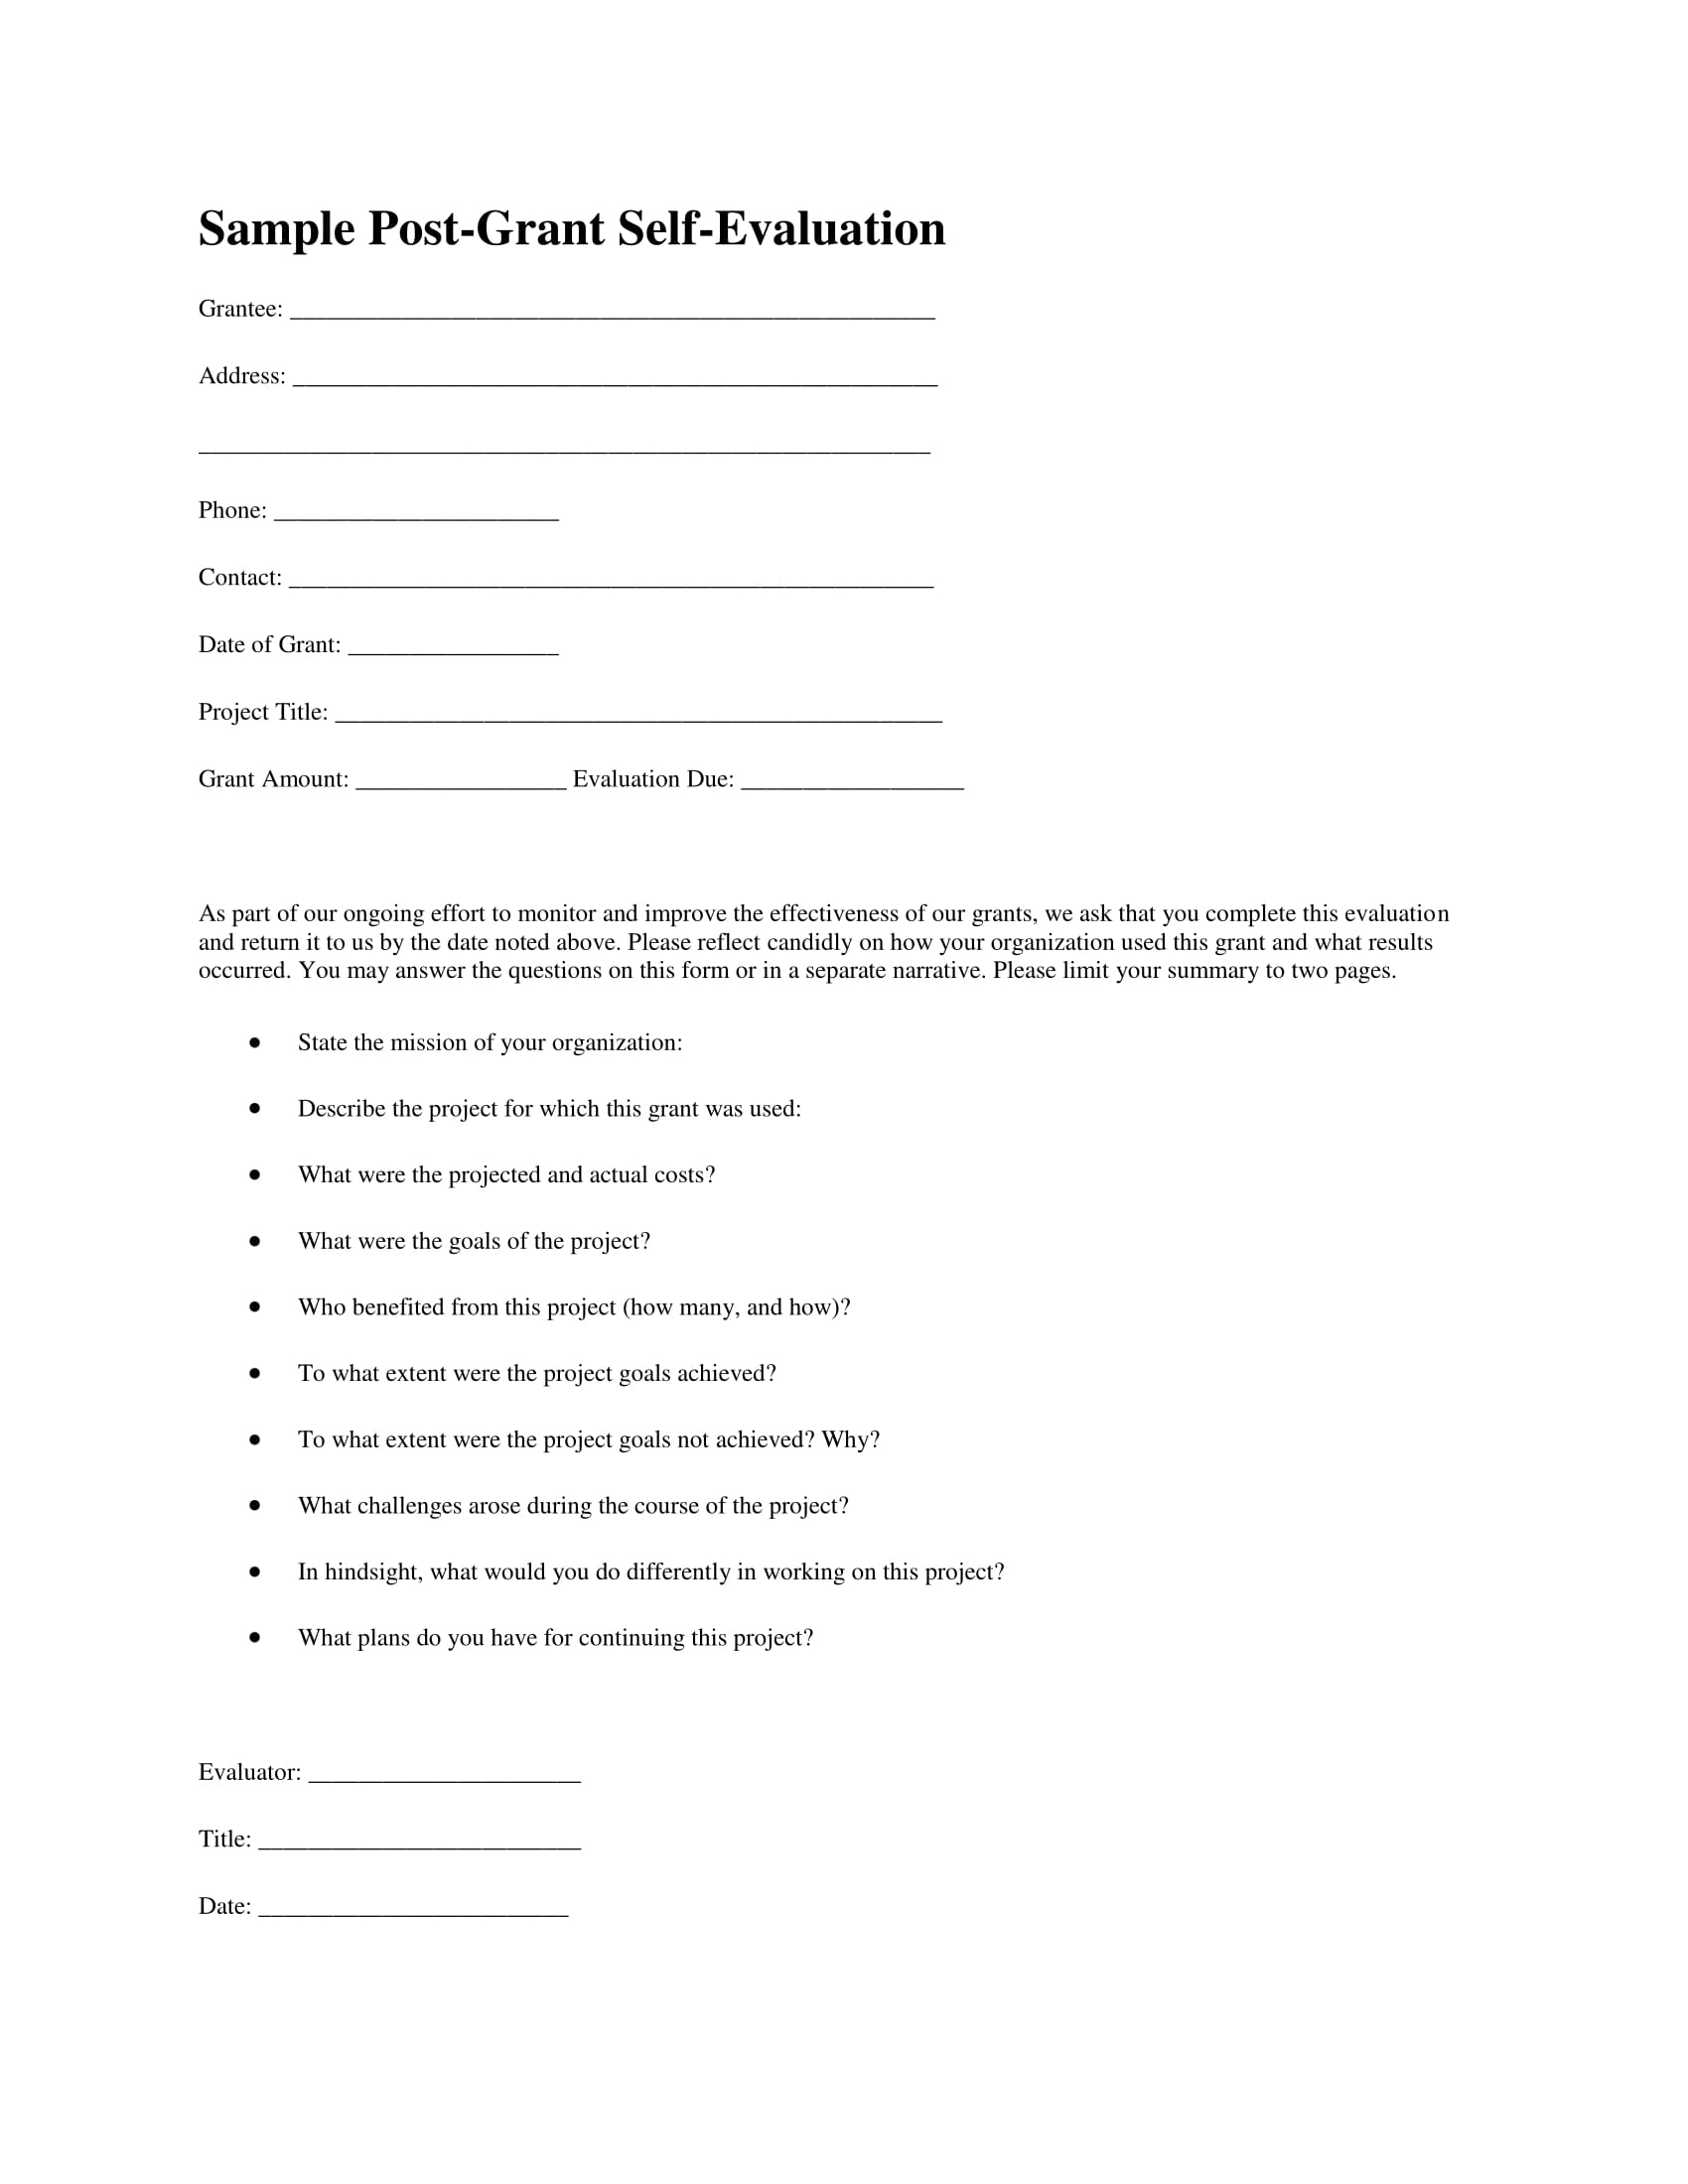 Feedback Forms Template strategic planning officer sample resume – Self Review Template